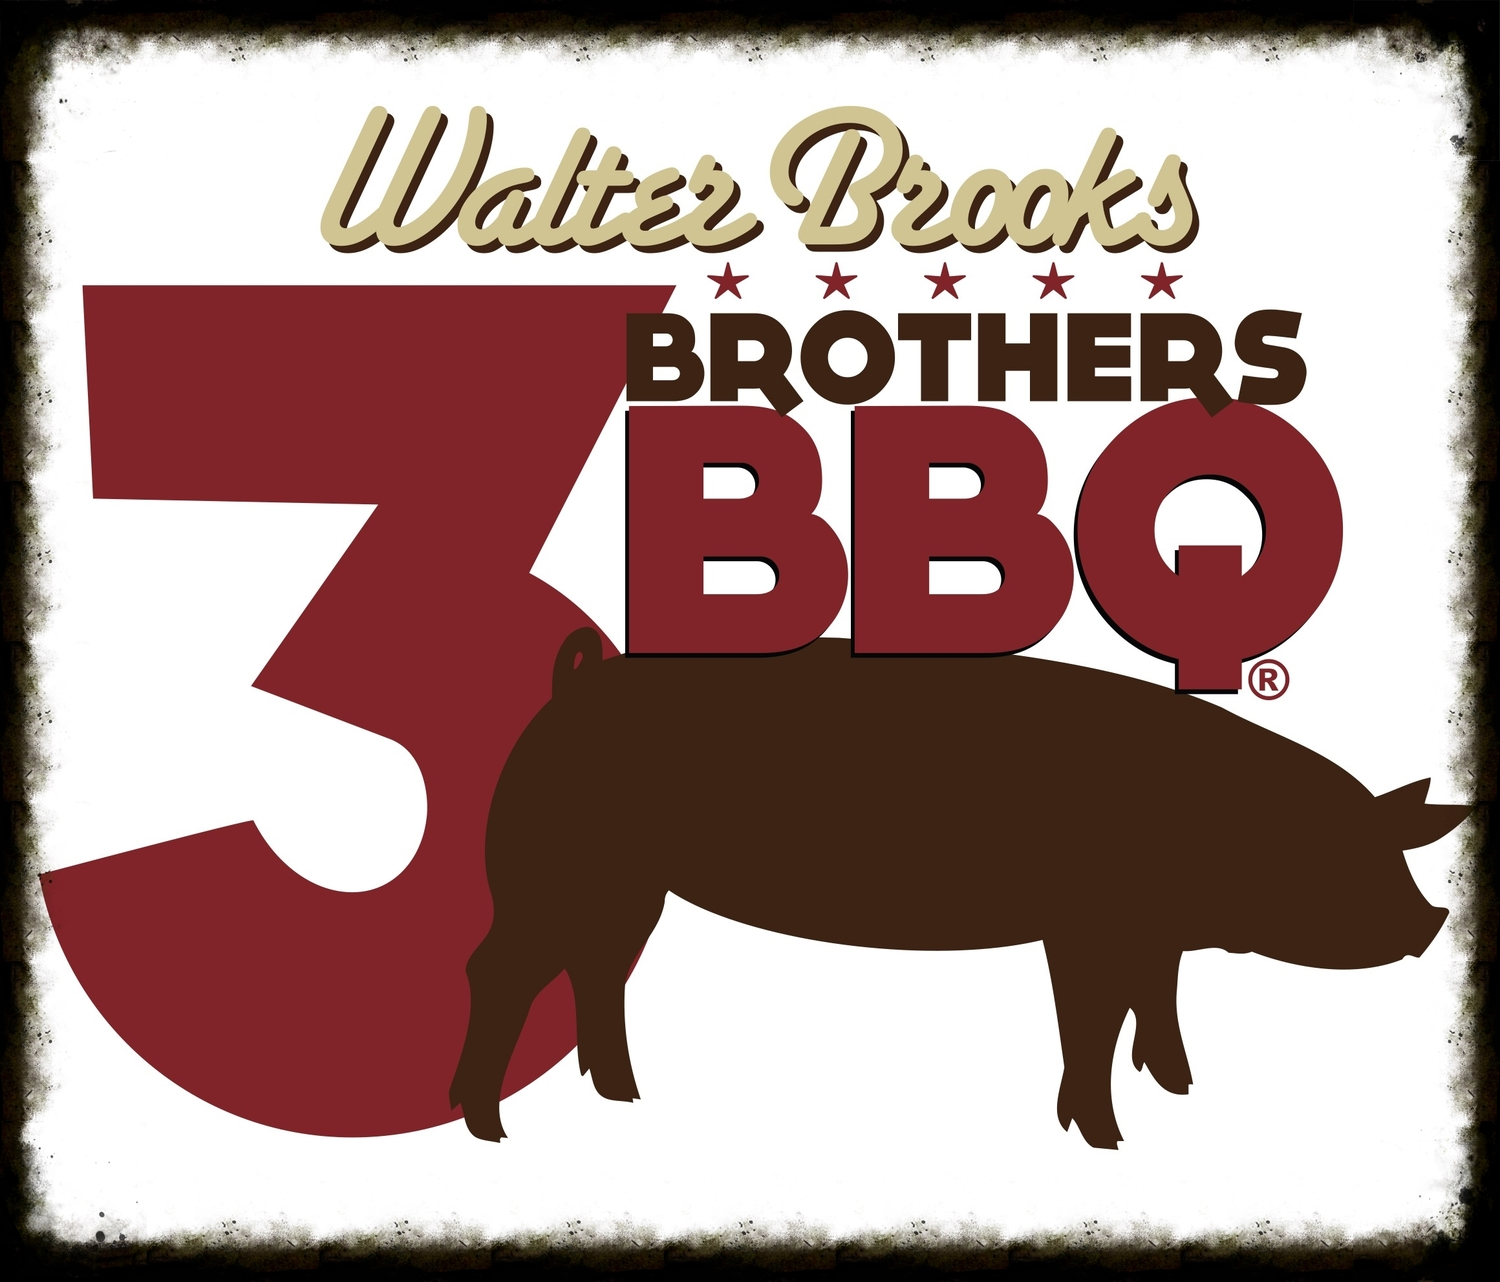 3 BROTHERS BBQ